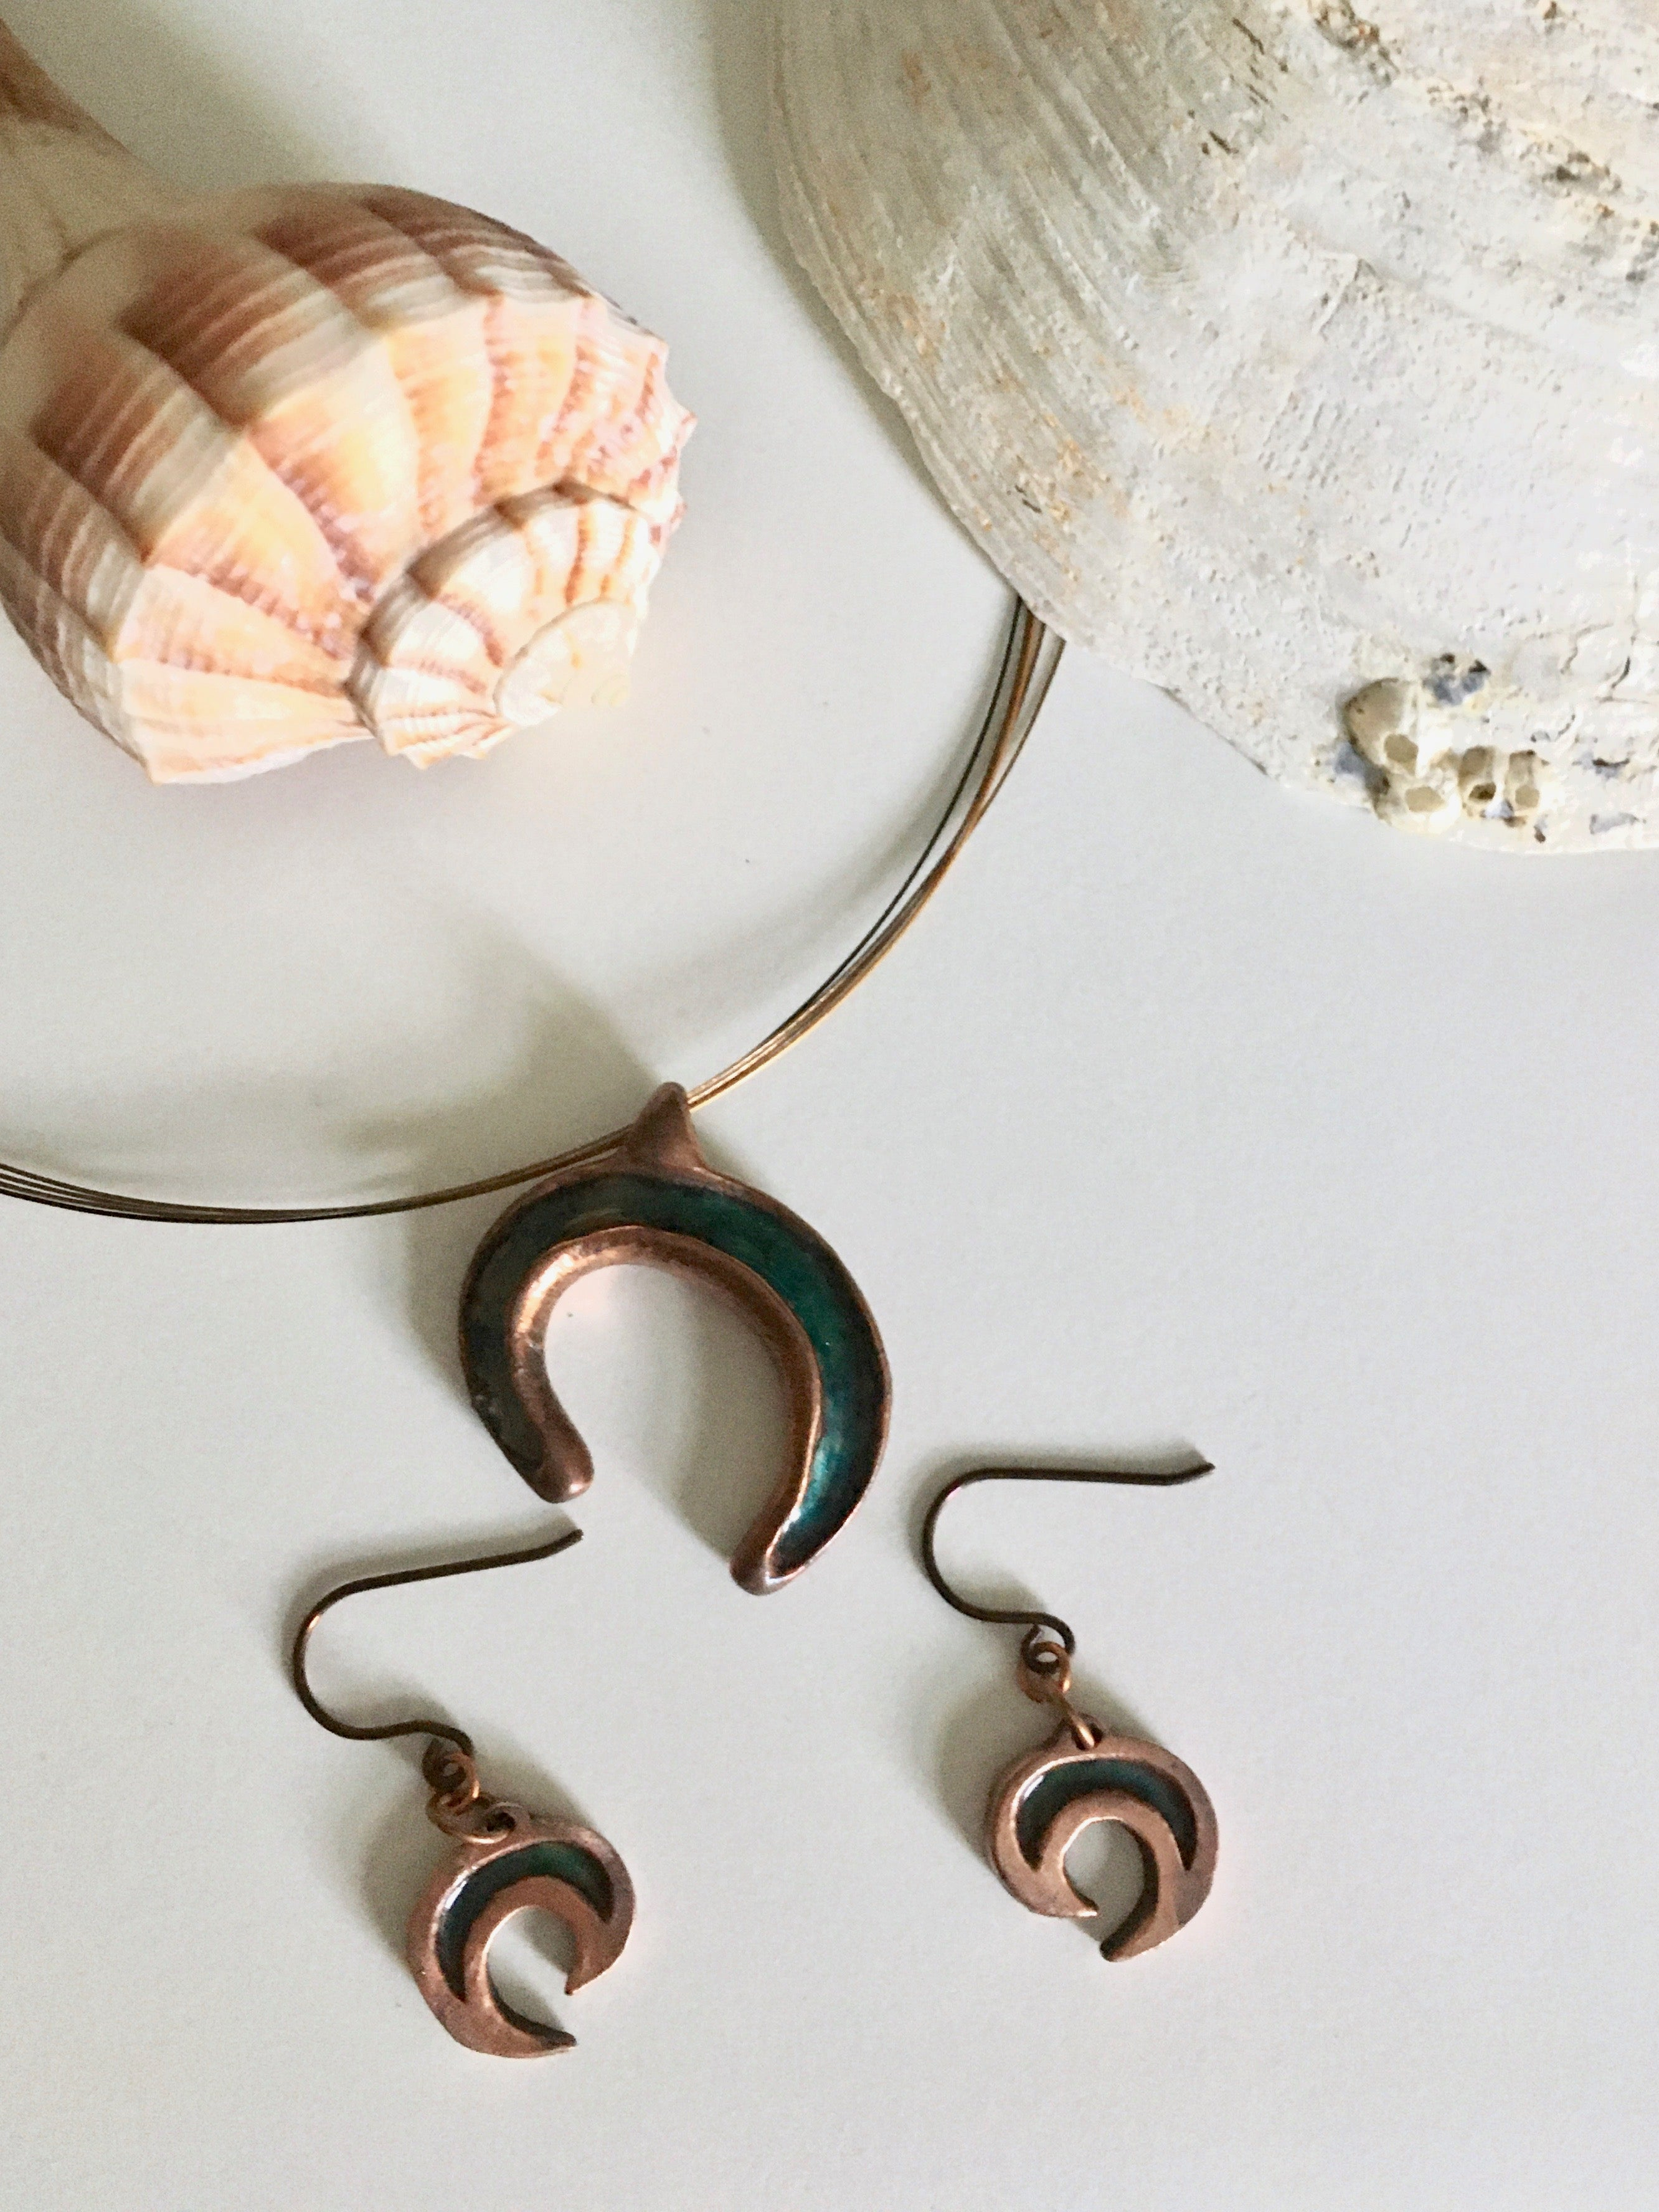 Copper necklace and earrings with seashells